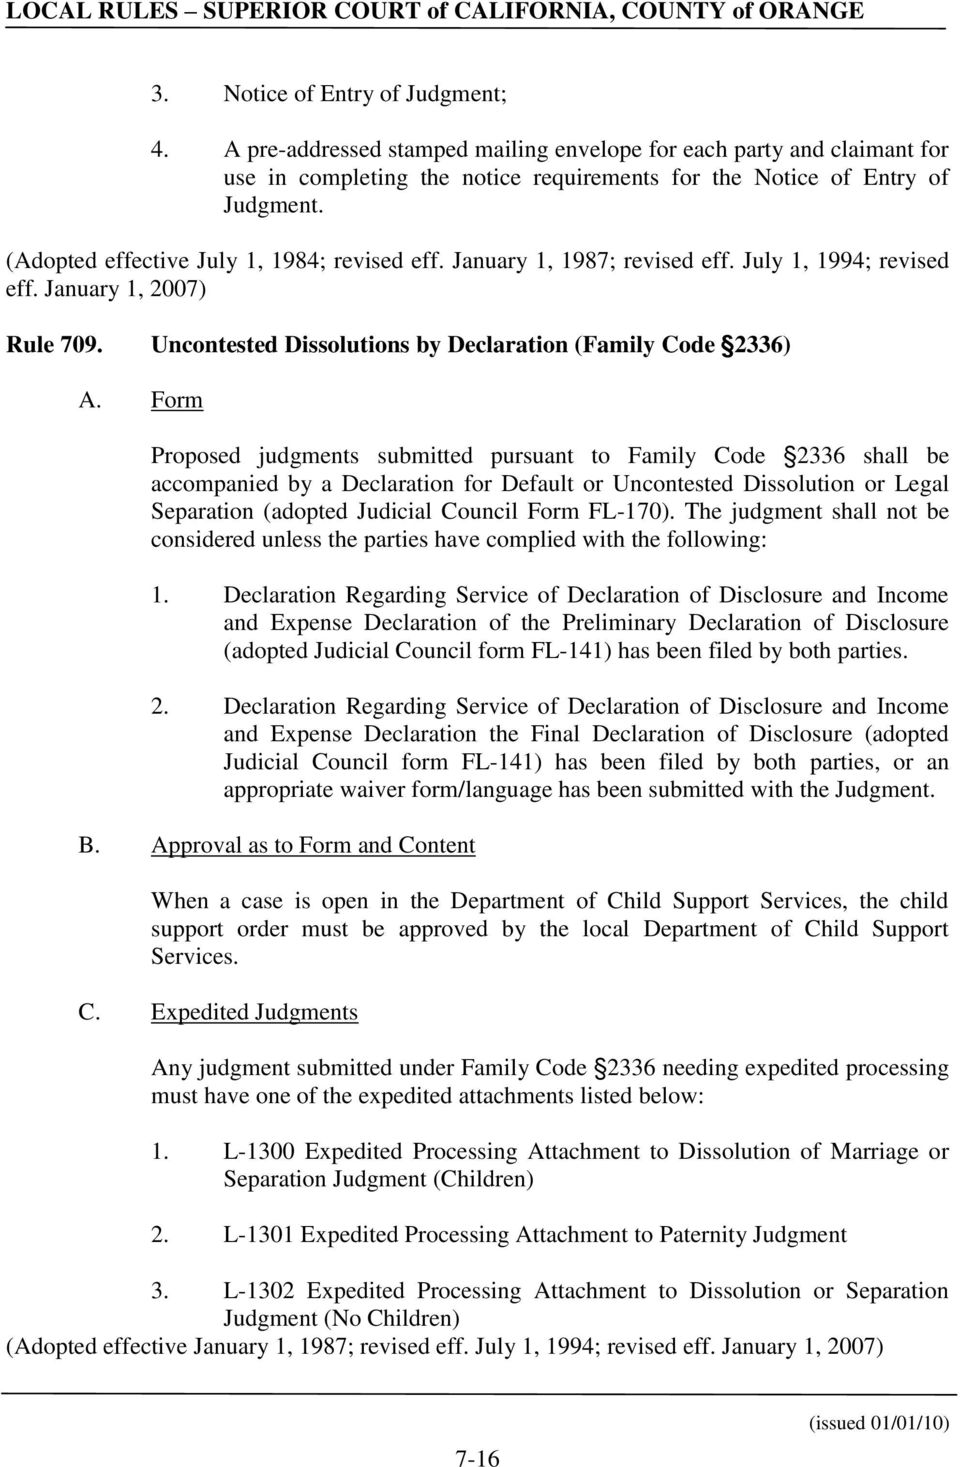 Form Proposed judgments submitted pursuant to Family Code 2336 shall be accompanied by a Declaration for Default or Uncontested Dissolution or Legal Separation (adopted Judicial Council Form FL-170).